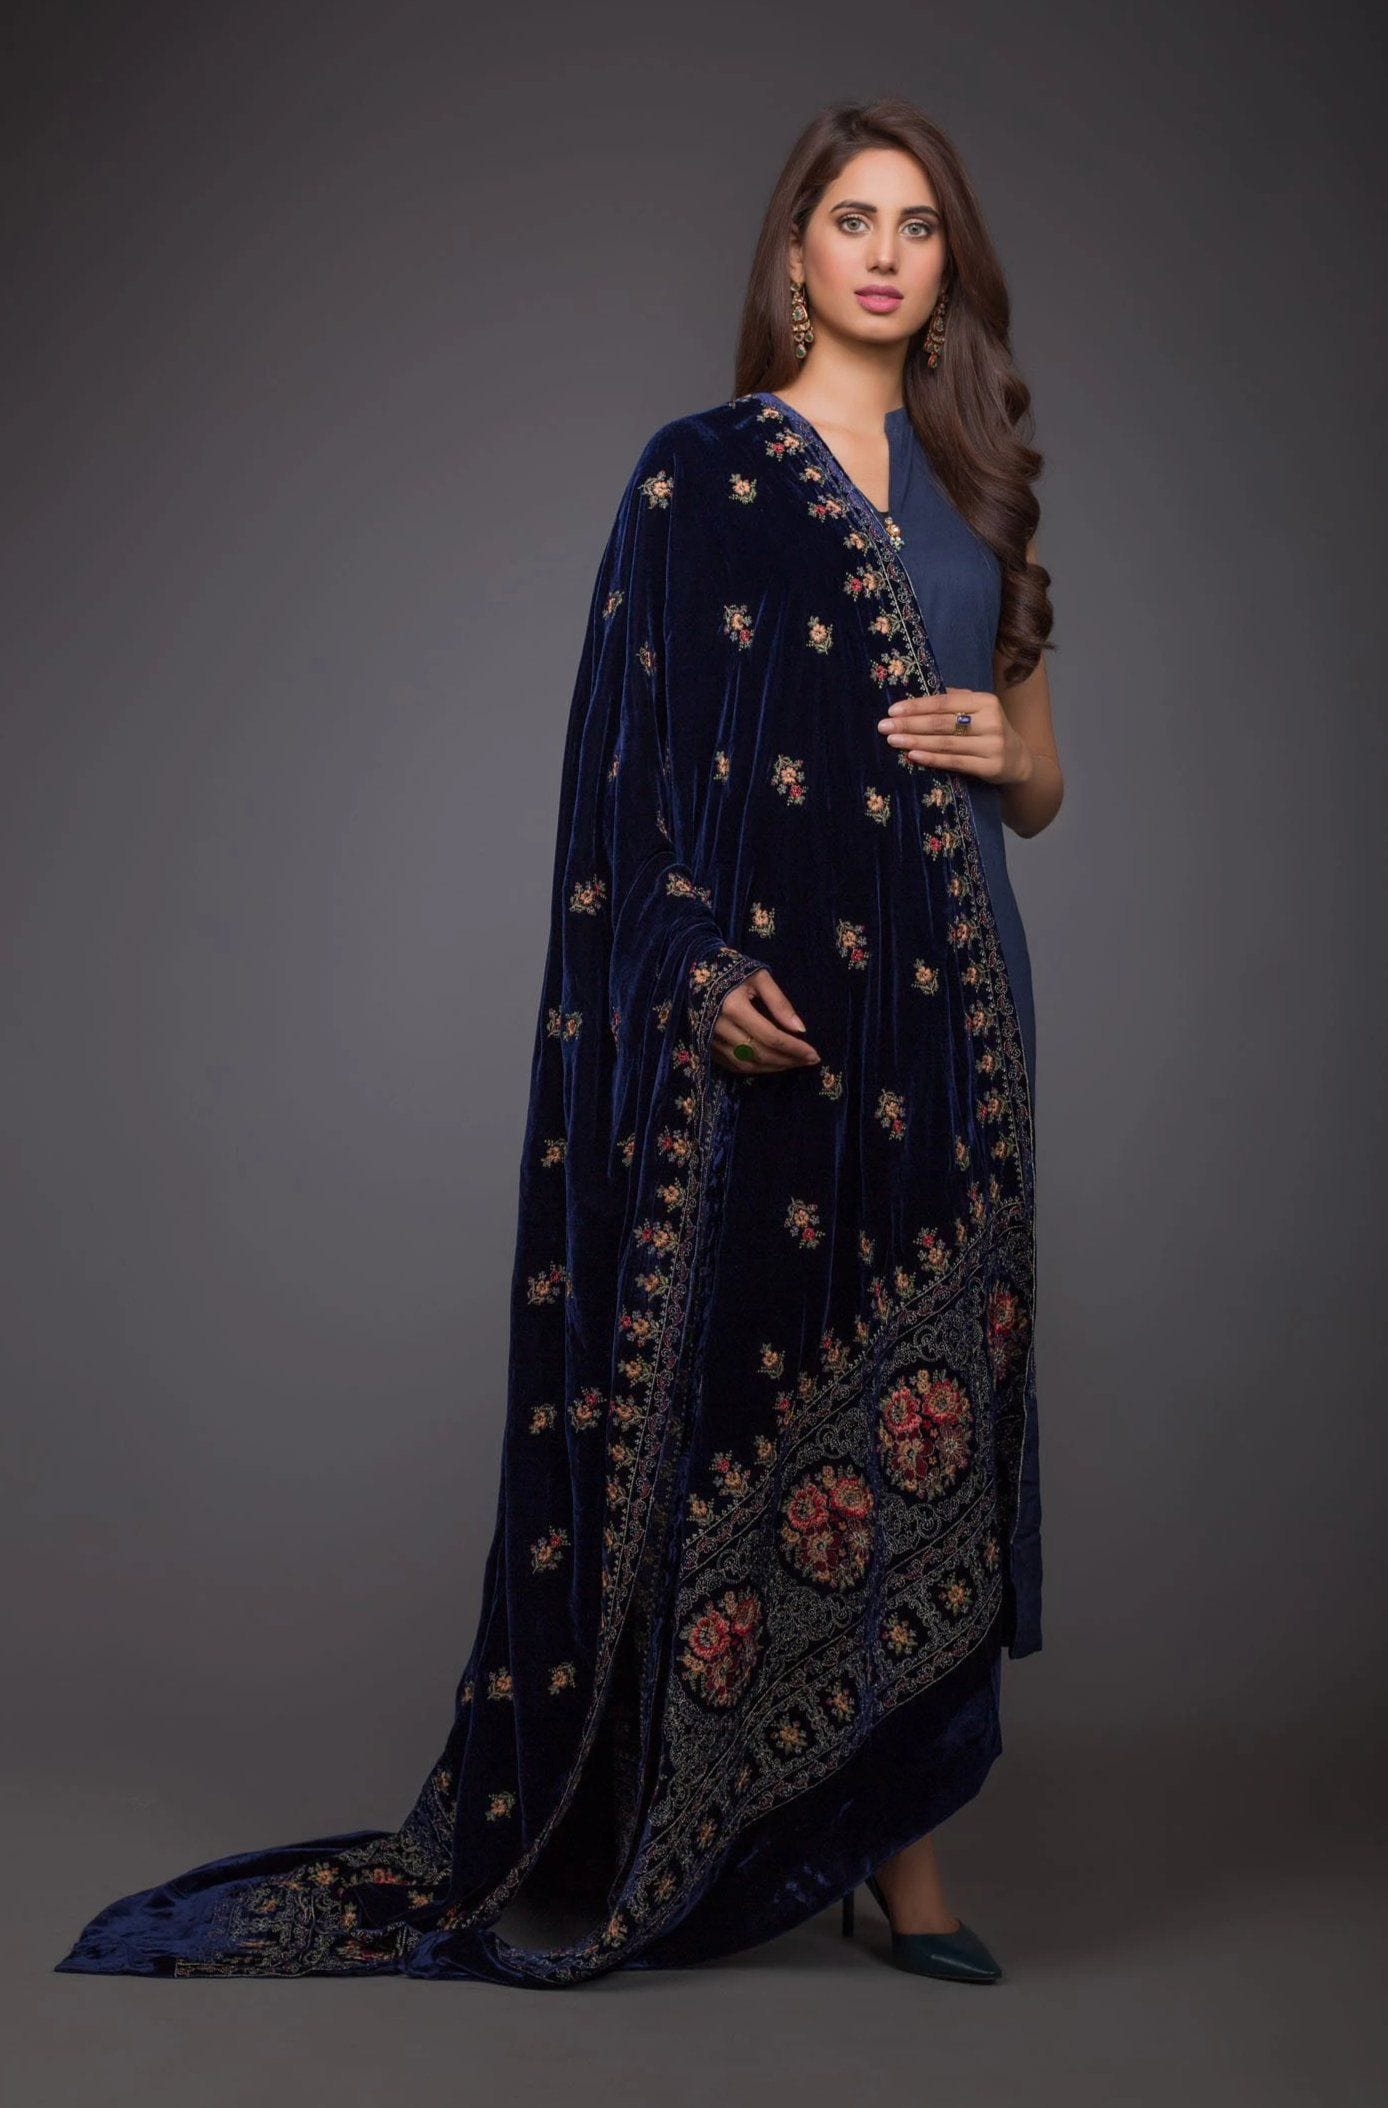 Victorian Range - Embroidered fine Quality Velvet Blue Shawl - gracestore.pk